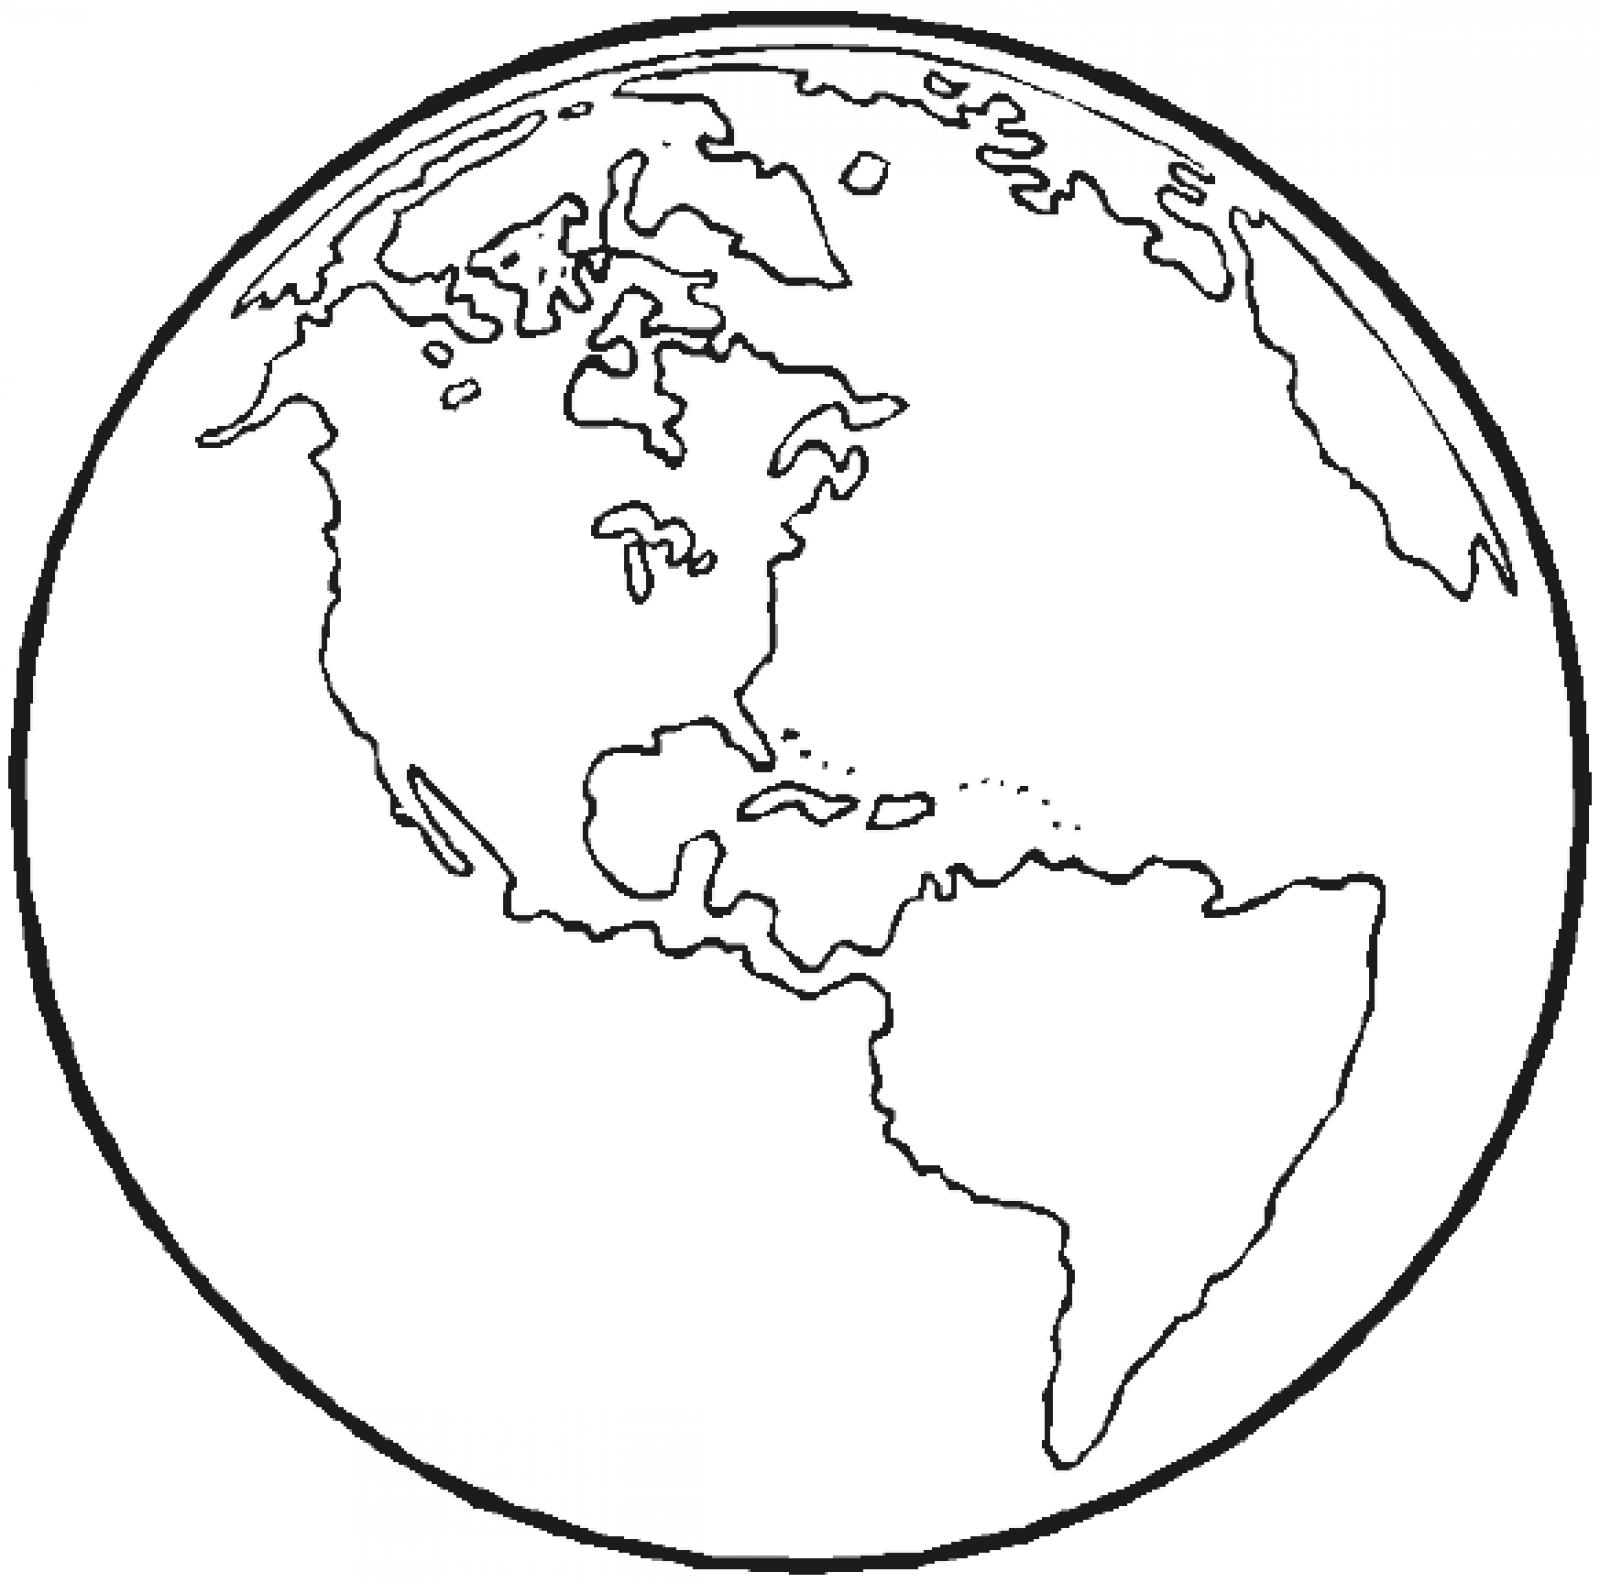 earth coloring pages free free printable earth coloring pages for kids earth coloring pages free